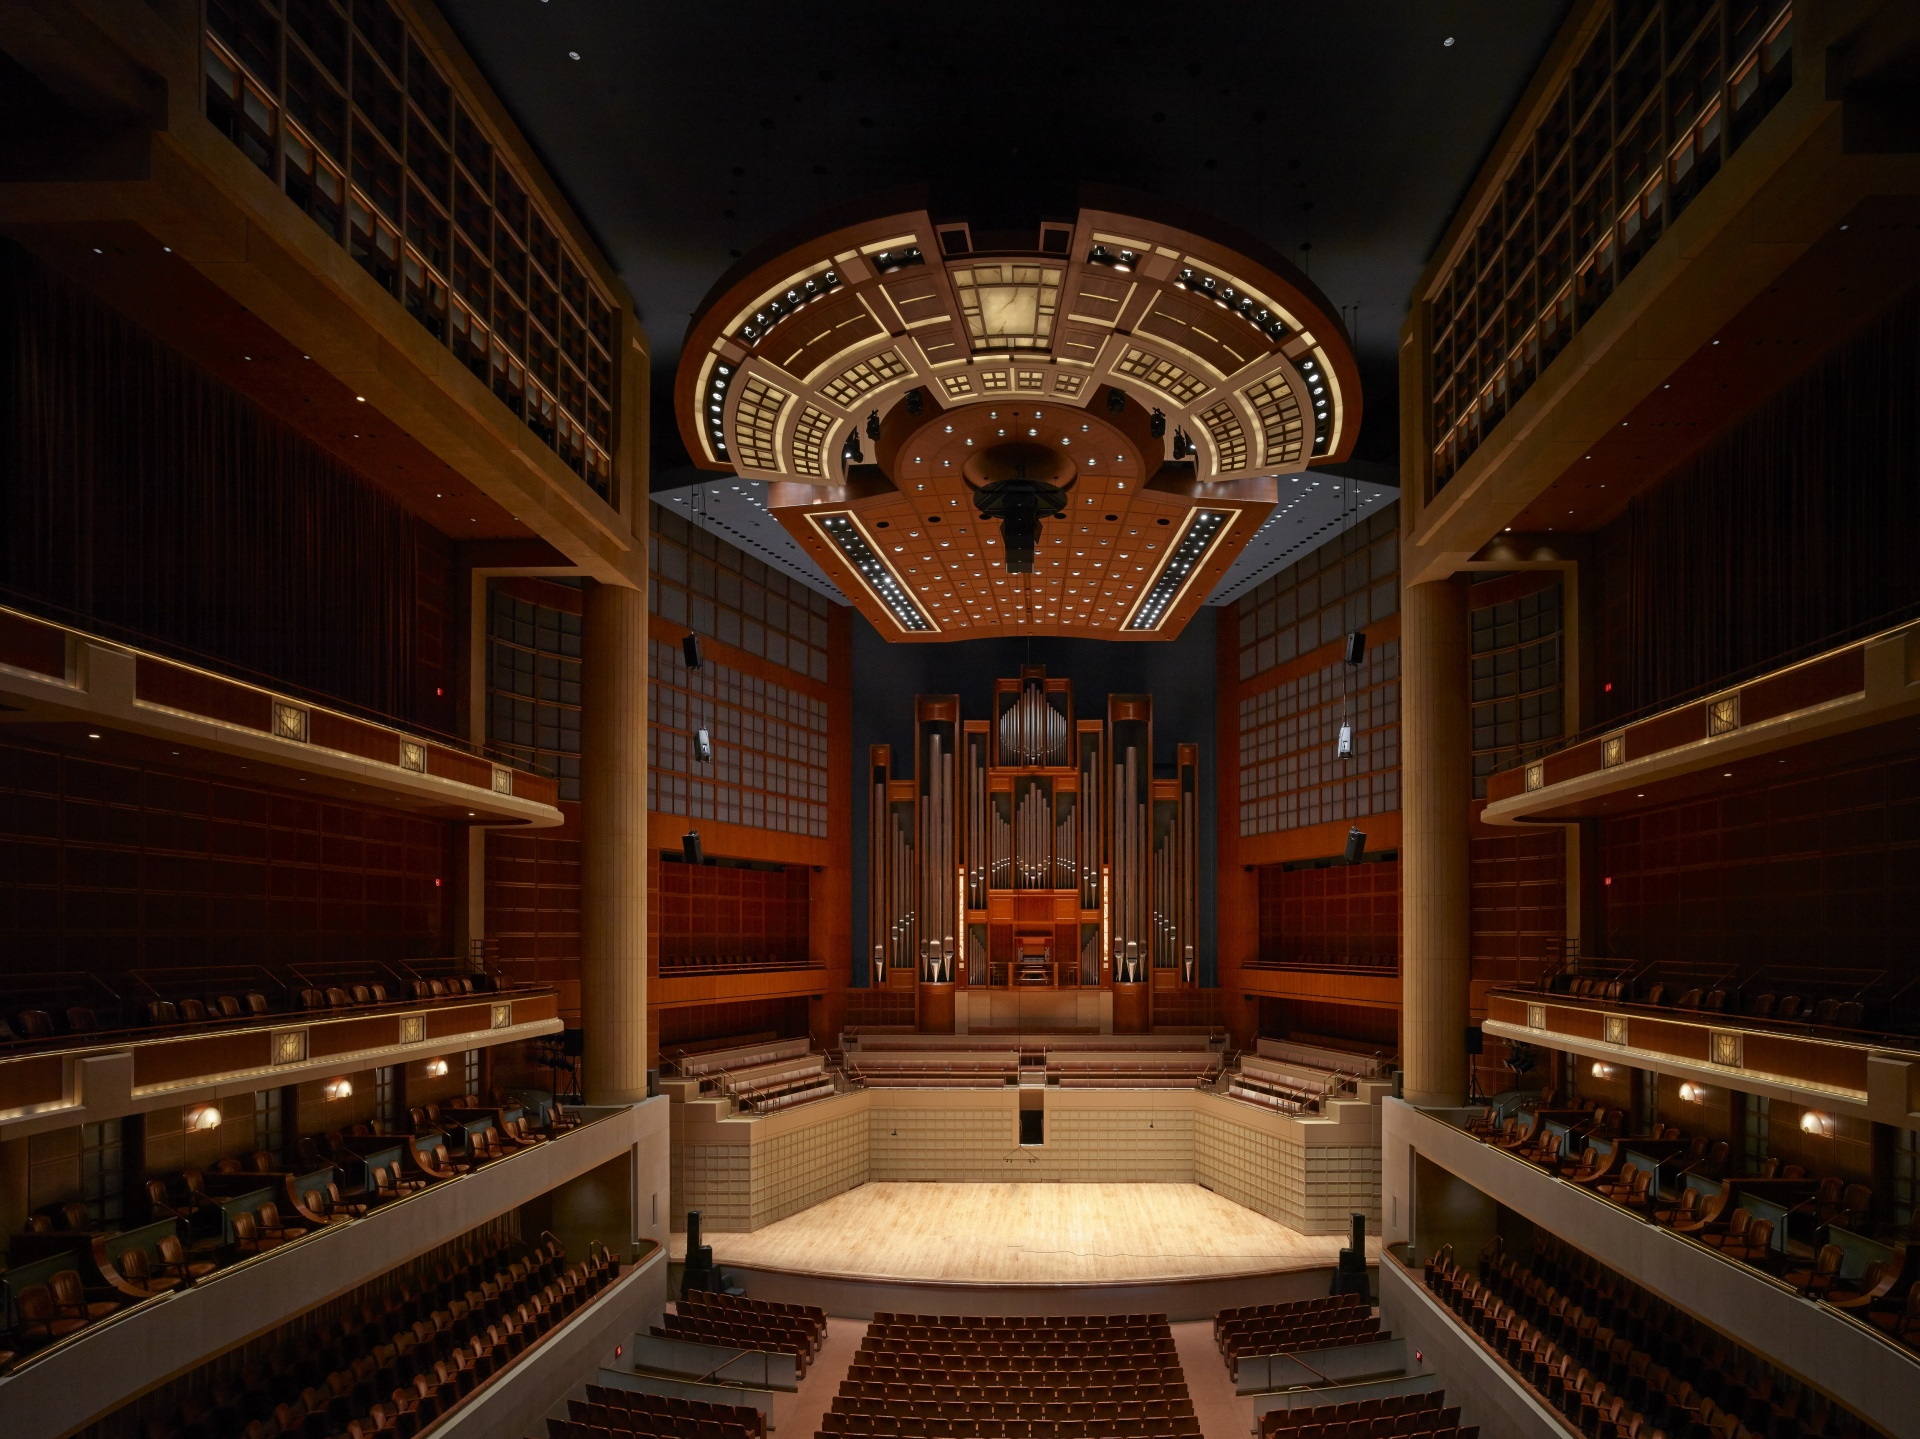 Myerson Symphony Hall Auditorium